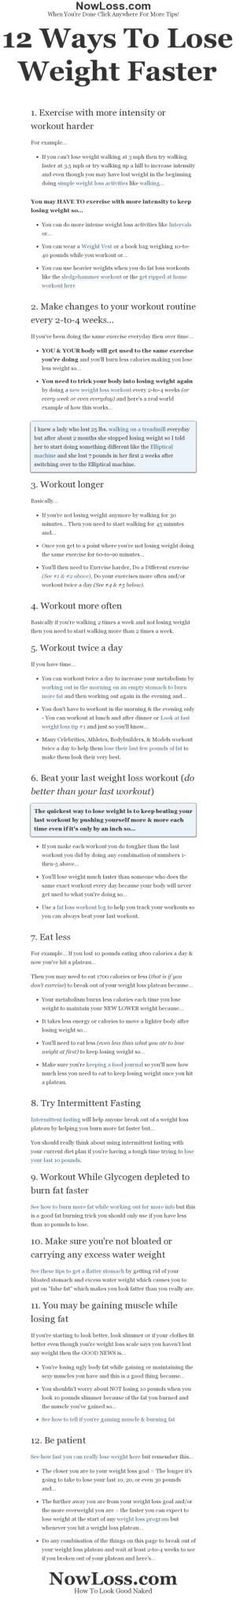 12 ways to lose weight faster or how to break out of a weight loss plateau by AislingH